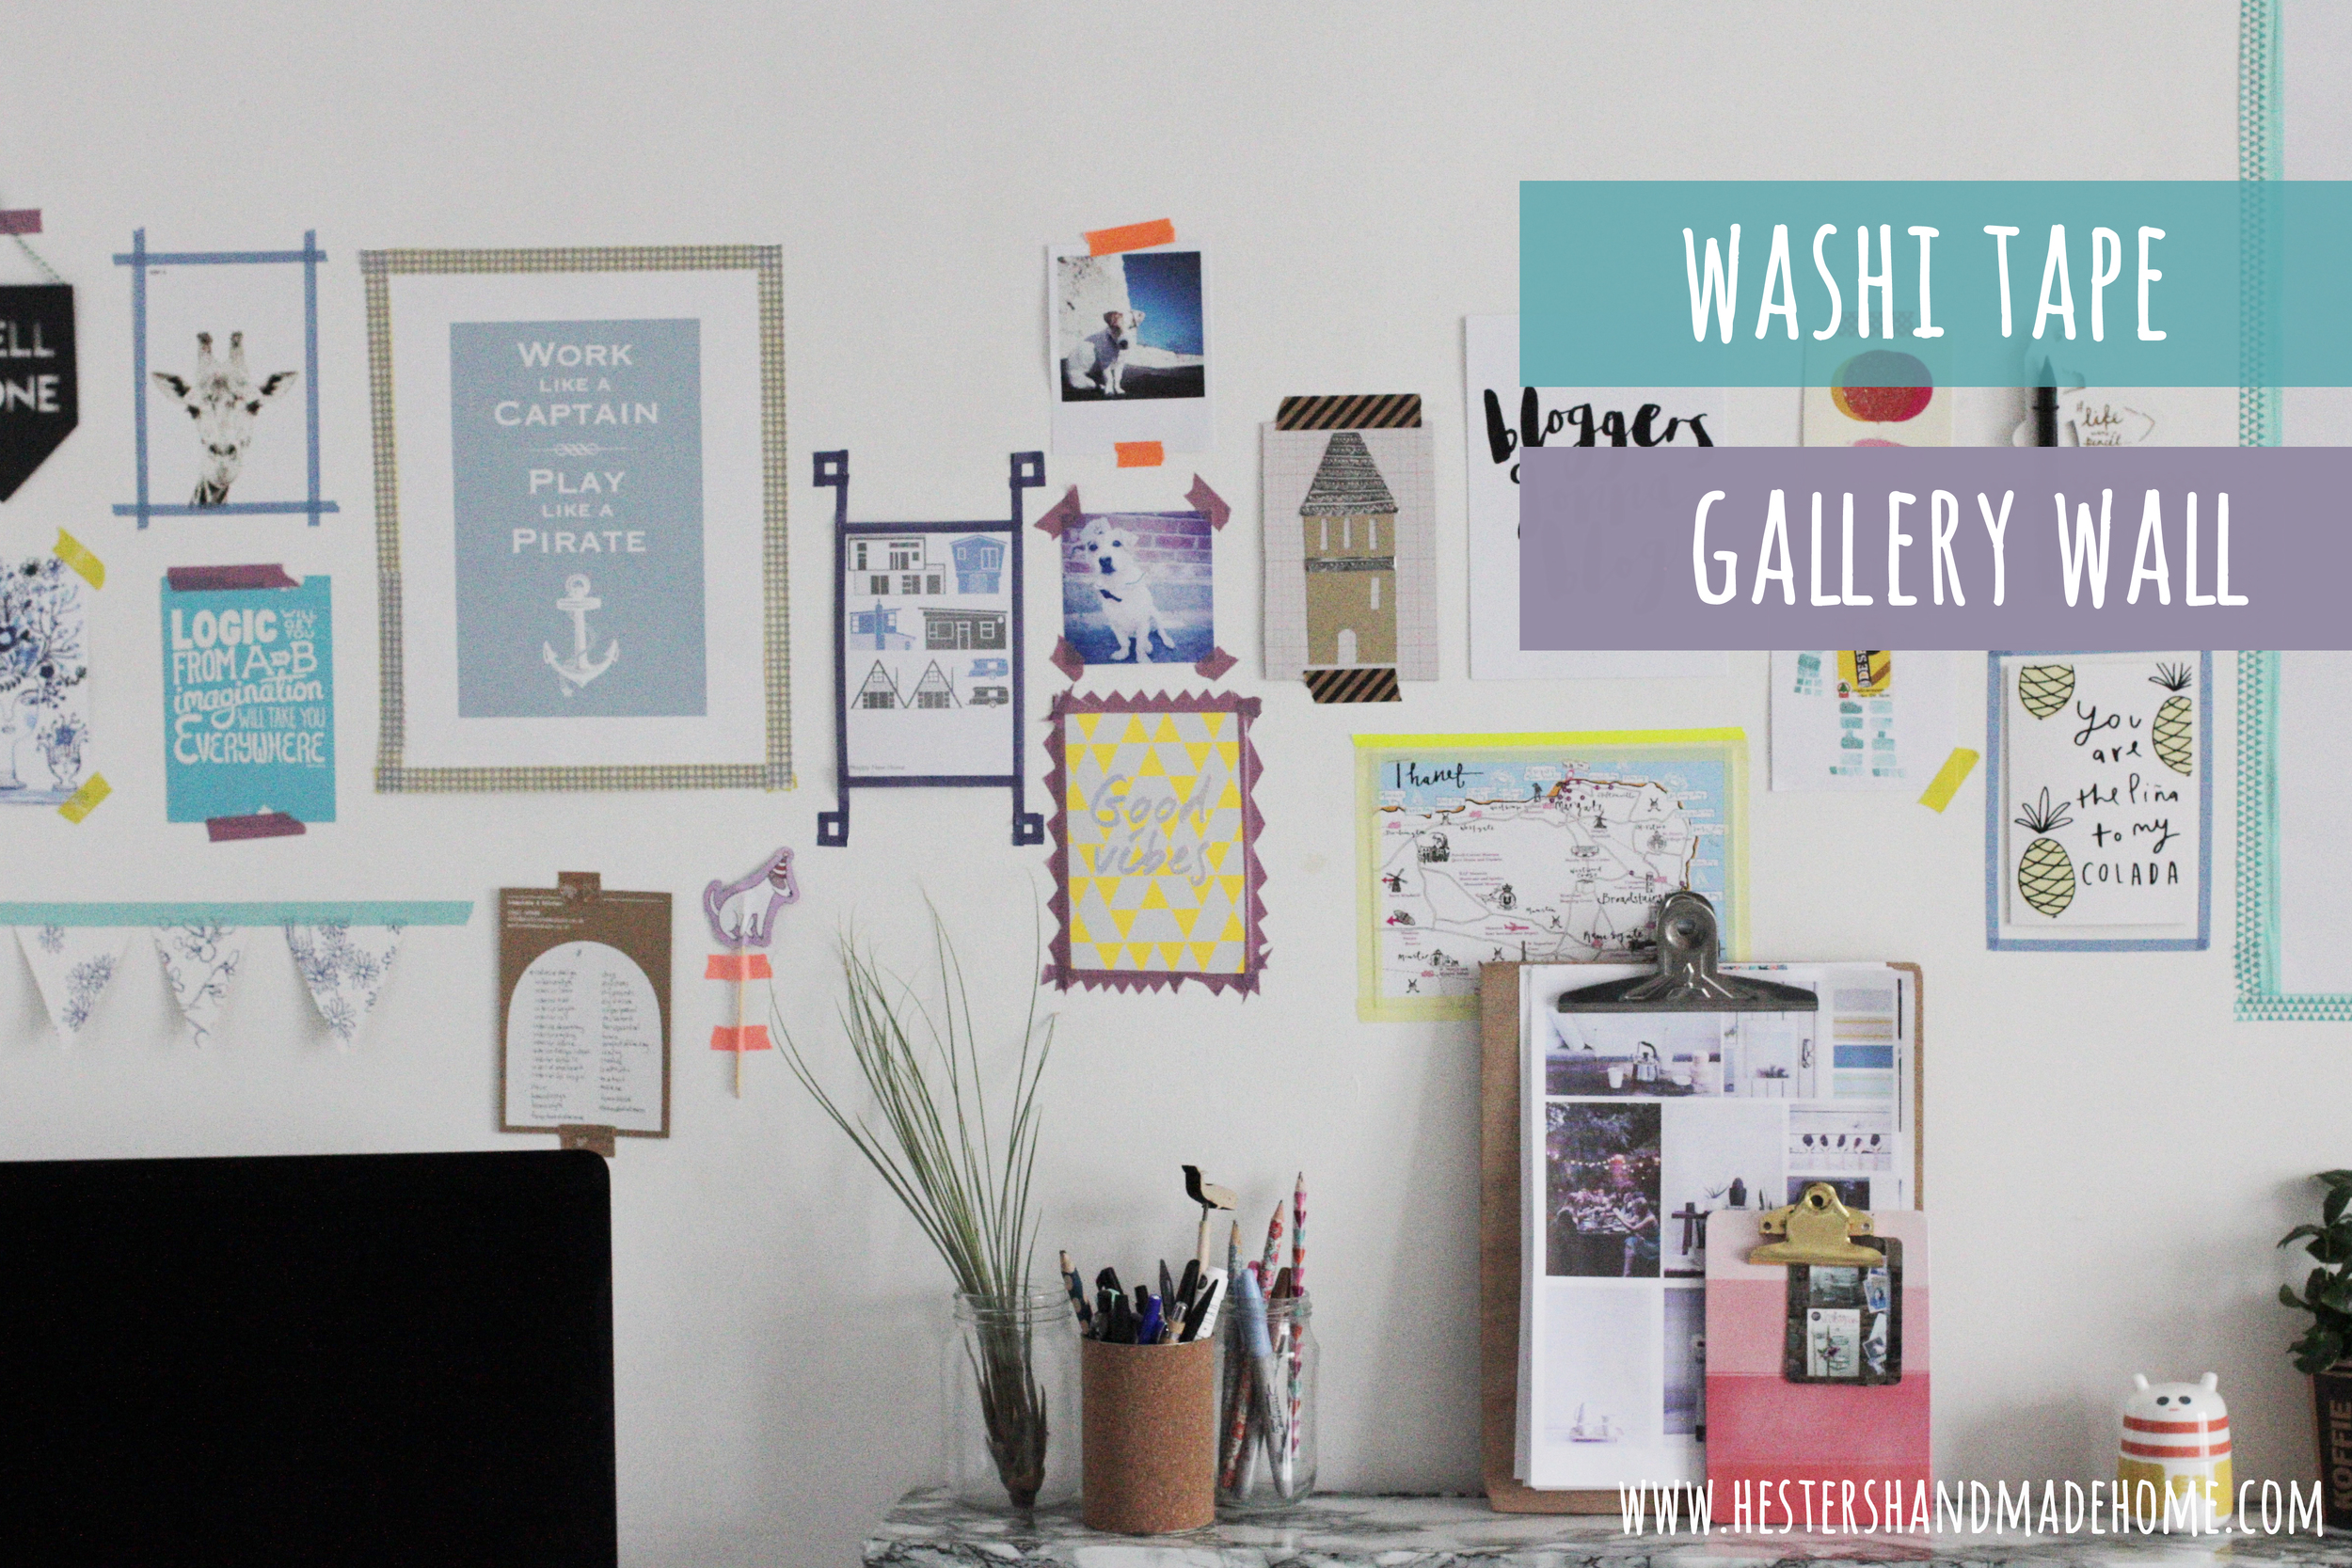 washi tape photo frames, great for a temporary gallery wall. Tutorial by Hesters Handmade Home